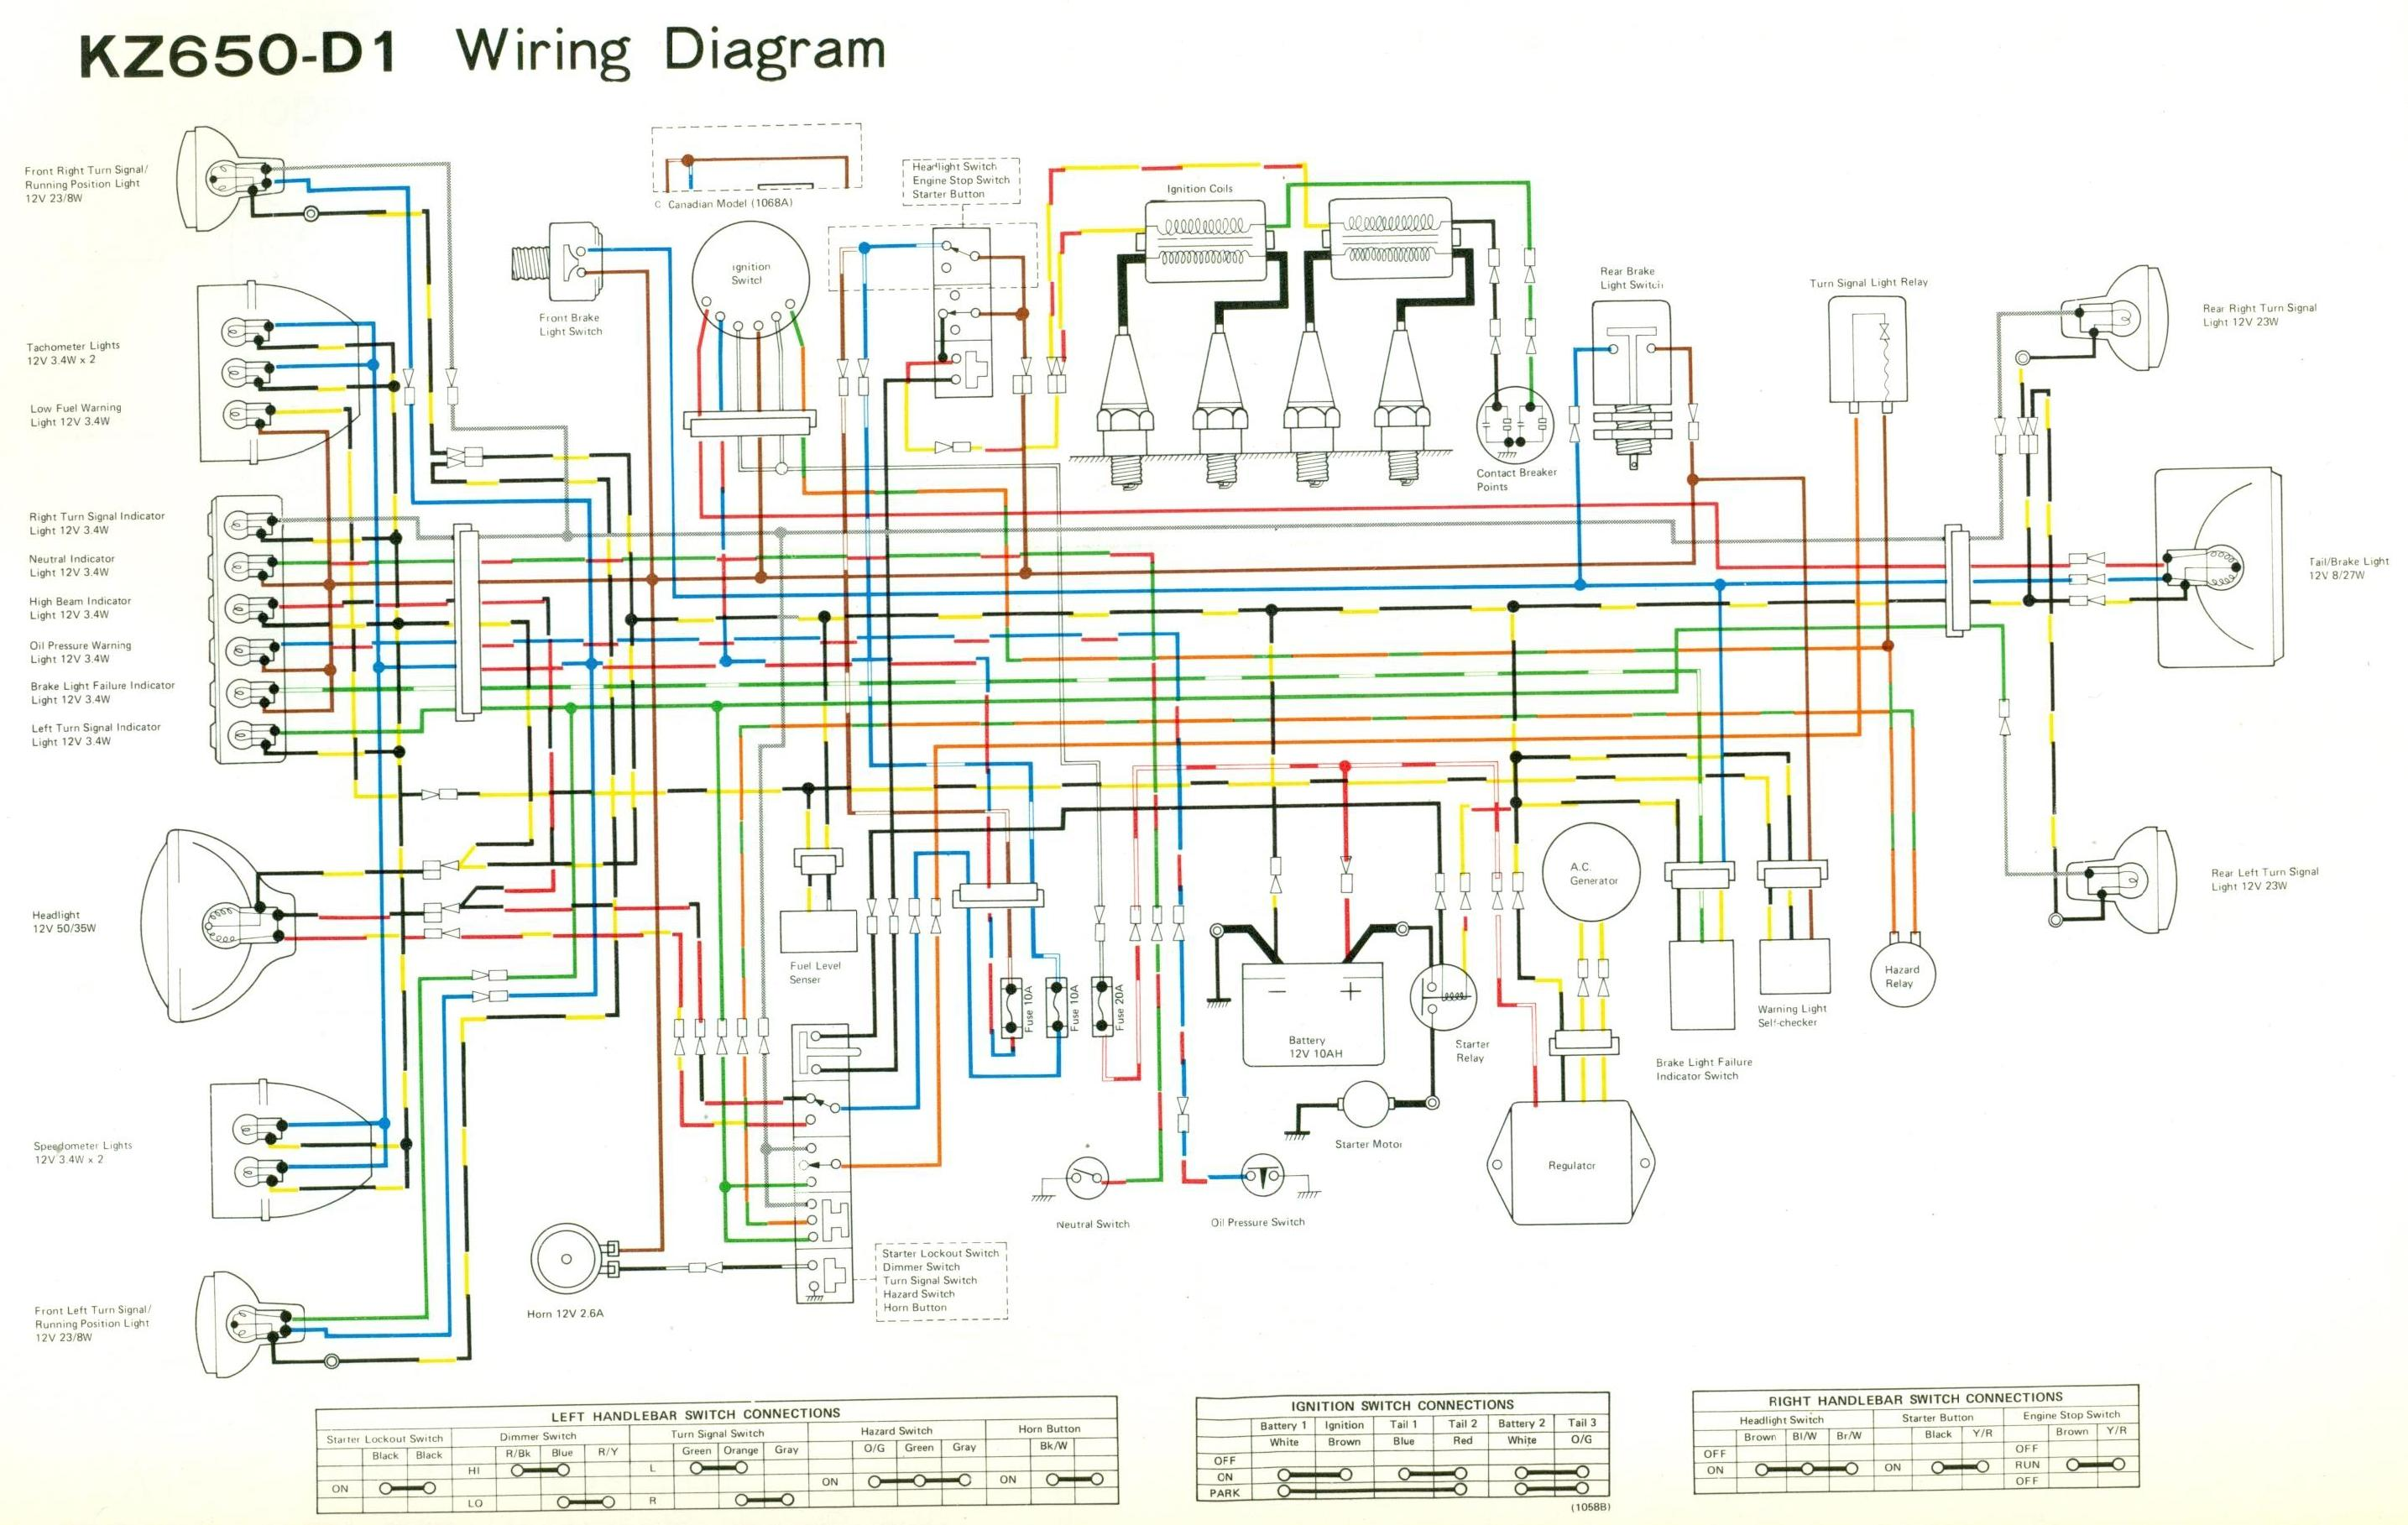 KZ650 D wiring diagrams 1980 kz650 wiring diagram at alyssarenee.co